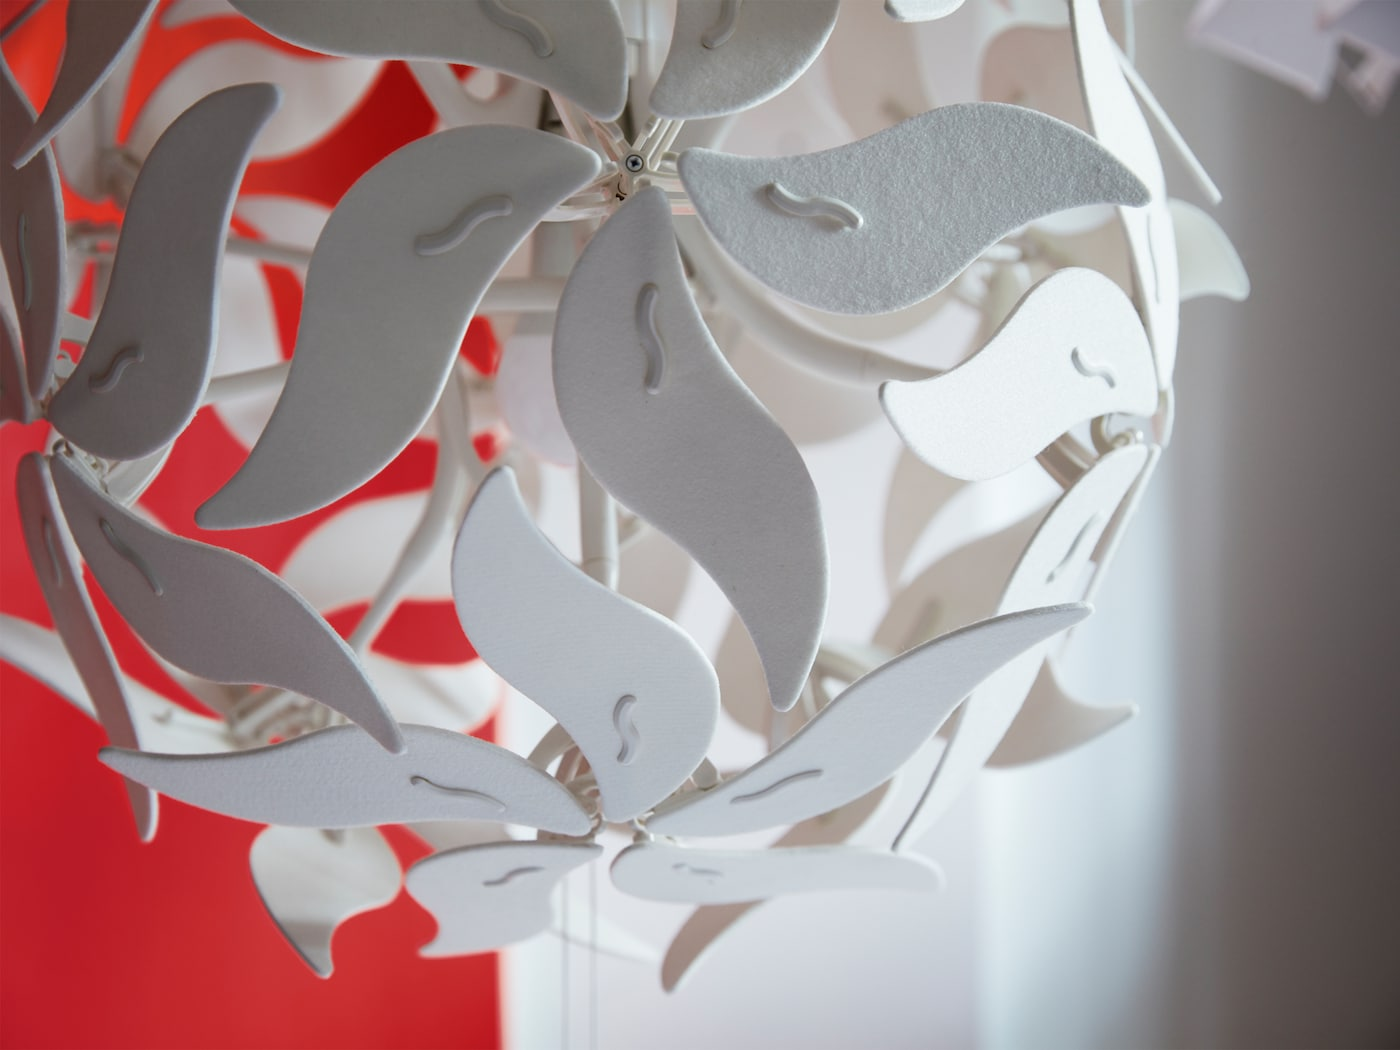 A close-up of RAMSELE pendant lamp in a flower design that can unfold when the strings are pulled.